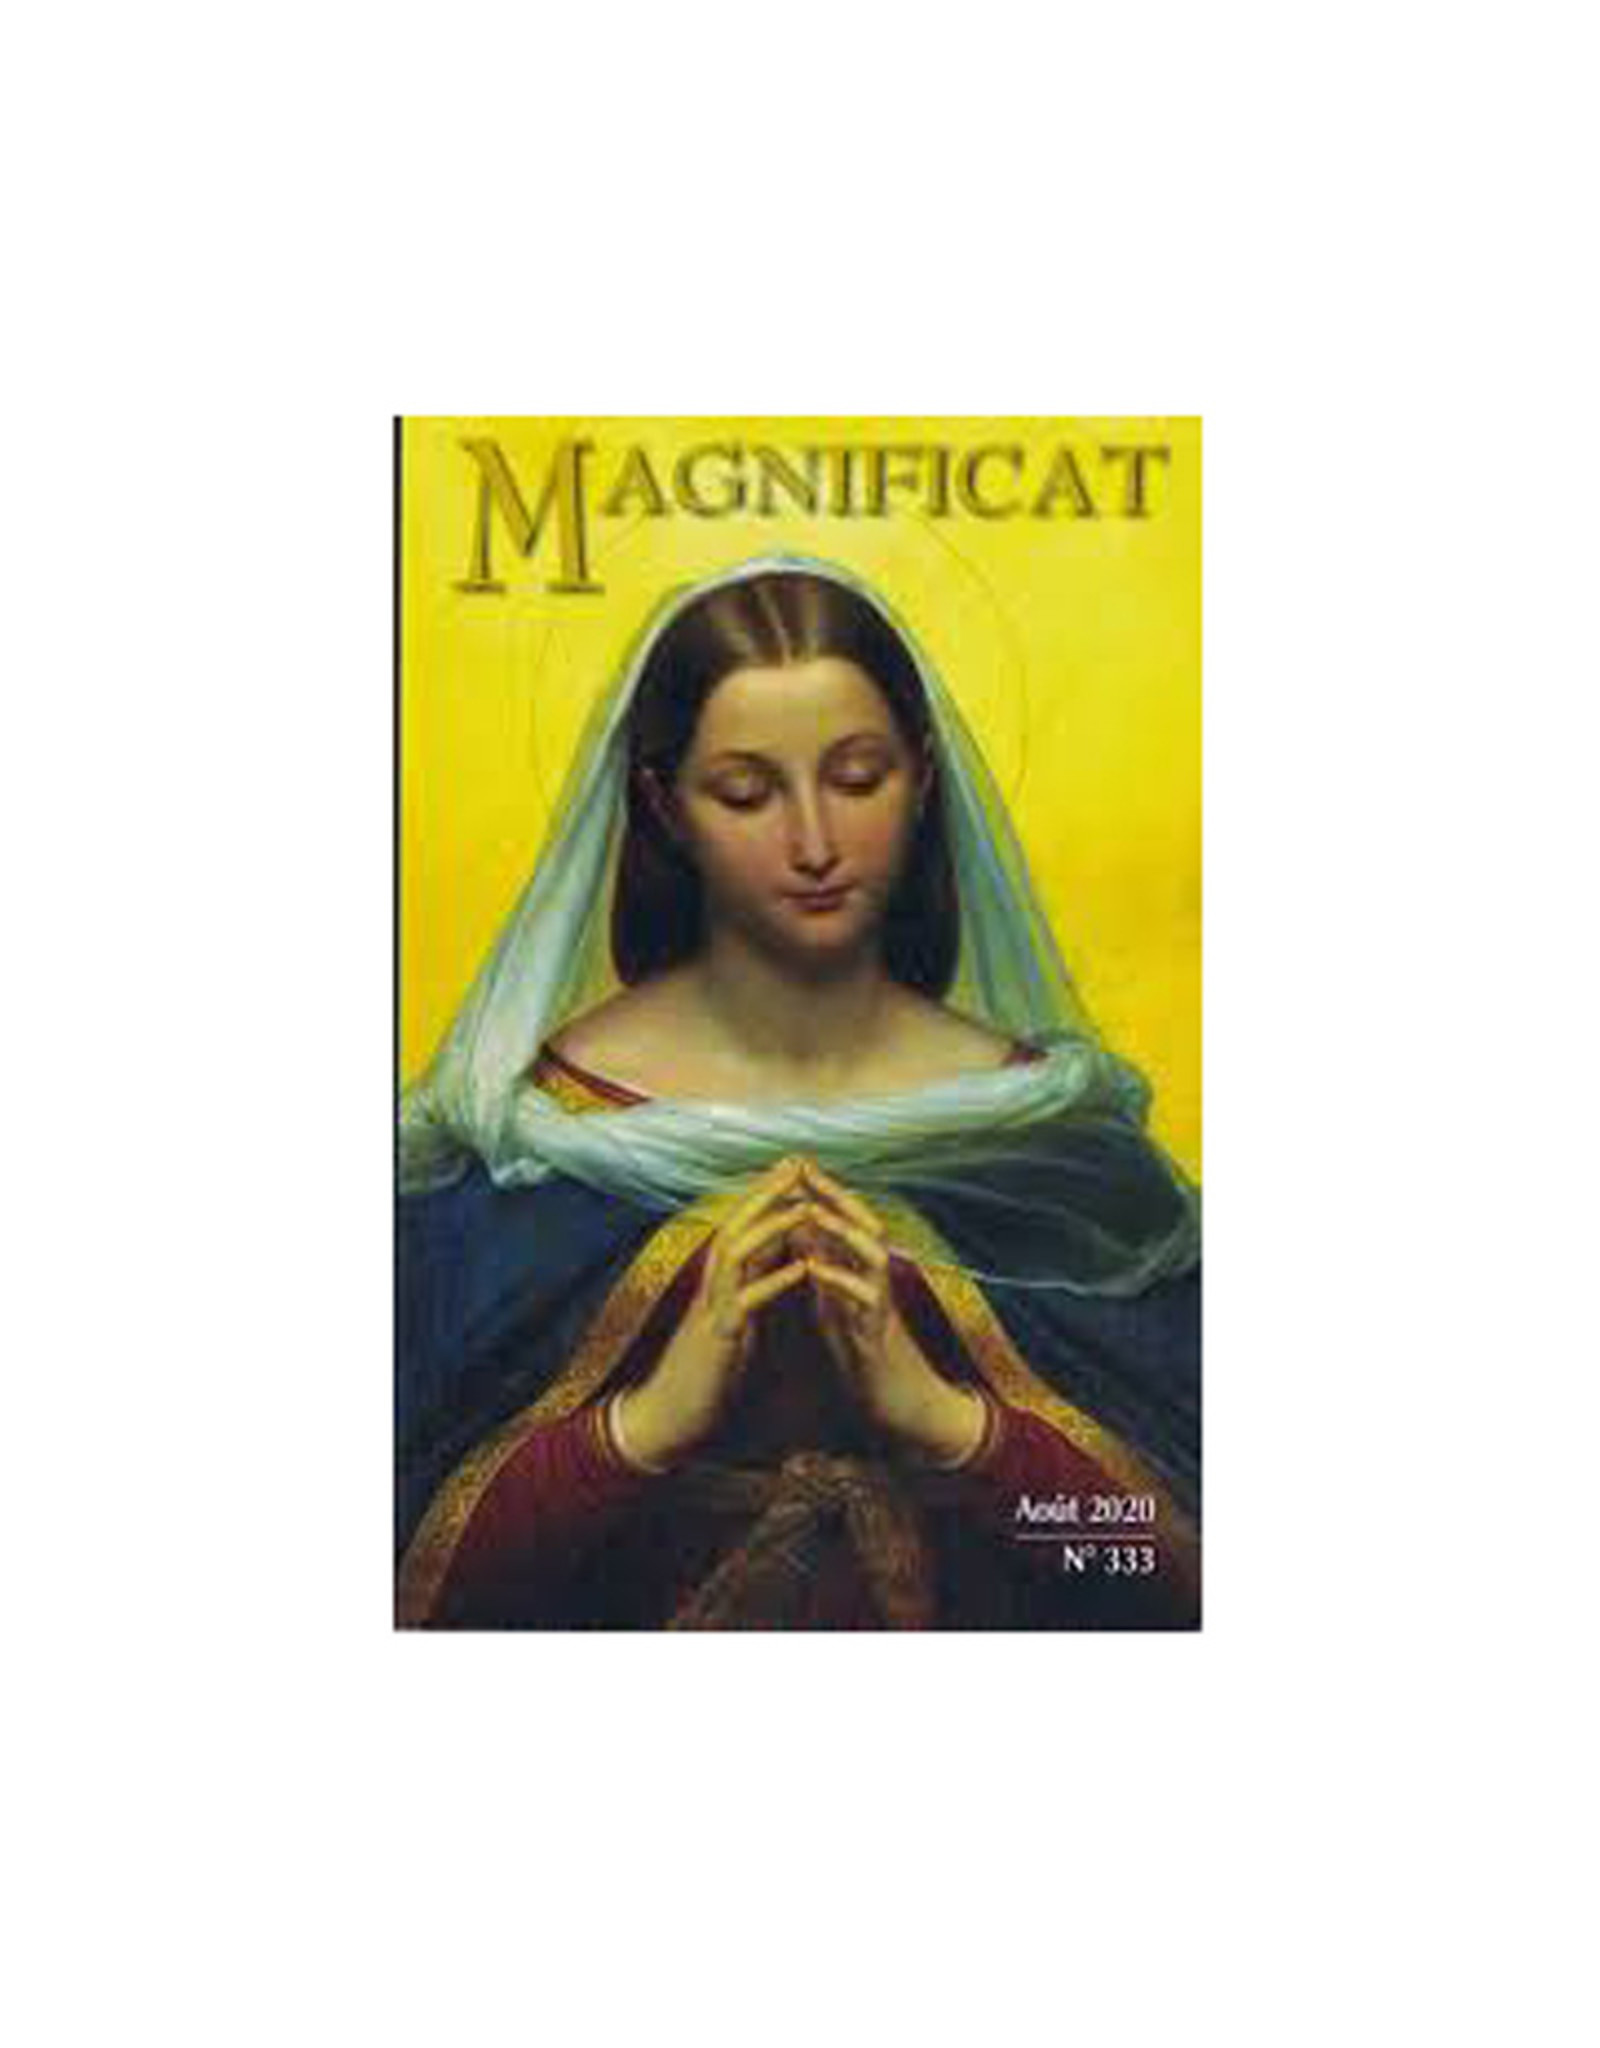 Magnificat - August 2020 (french)